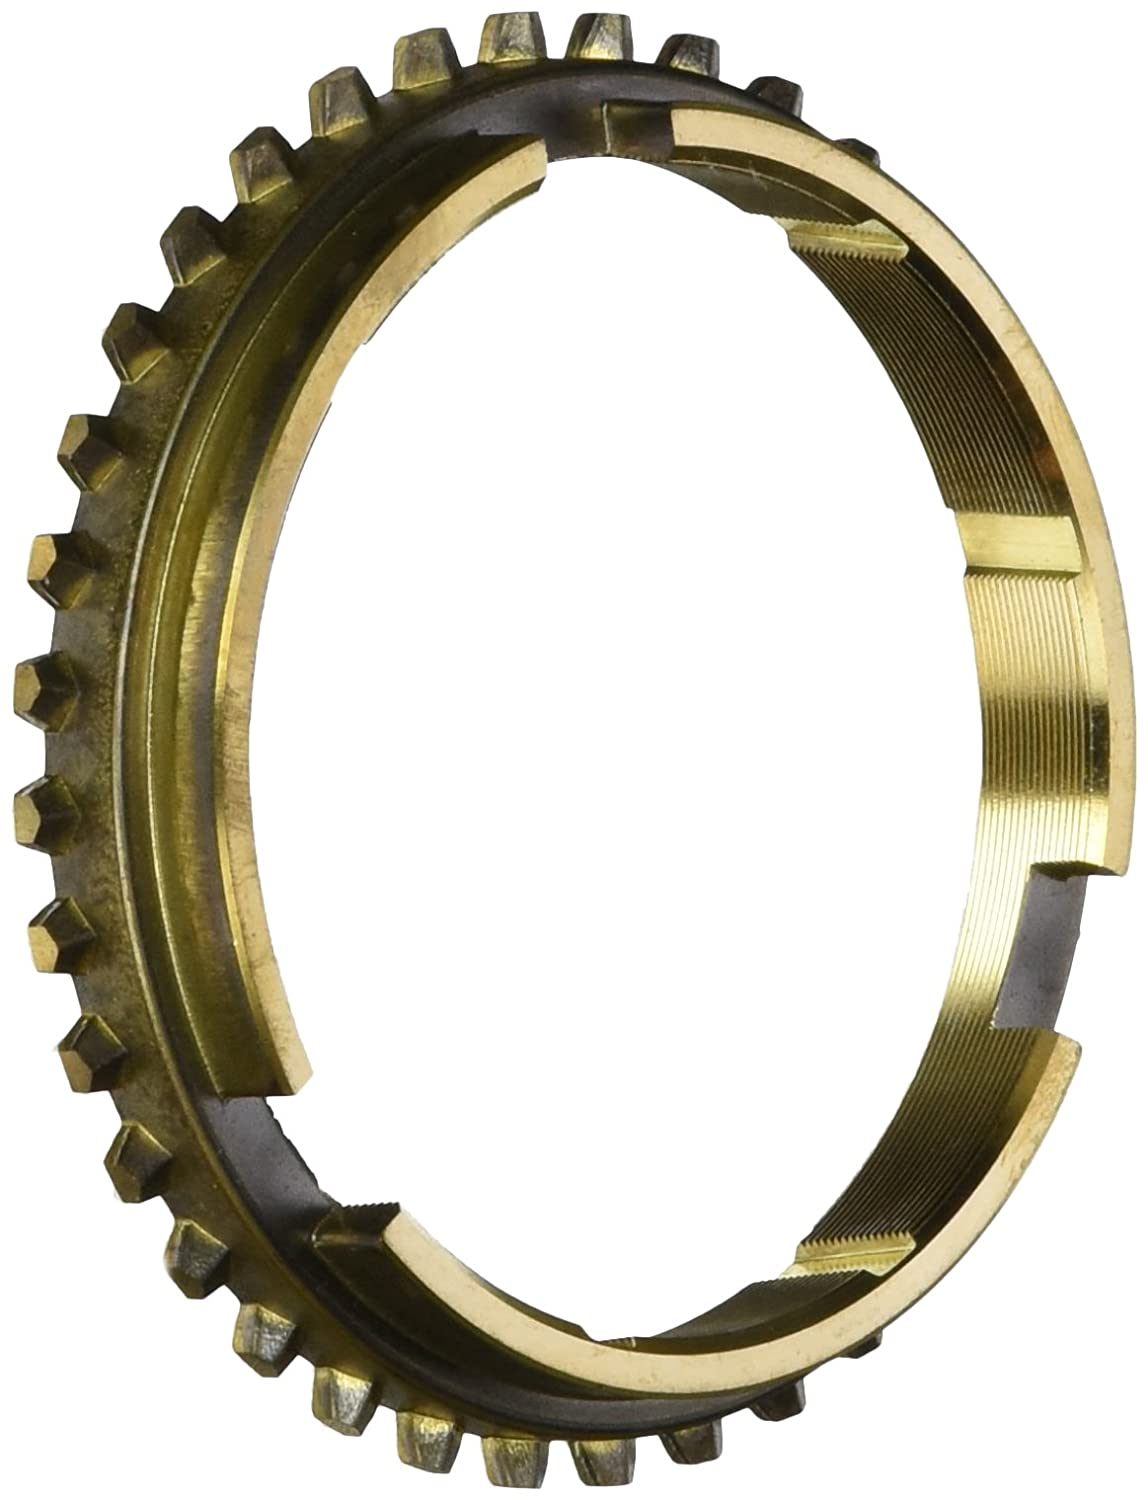 Motive Gear WT297-14A Muncie Synchro Rings (Stepped), 1 Pack